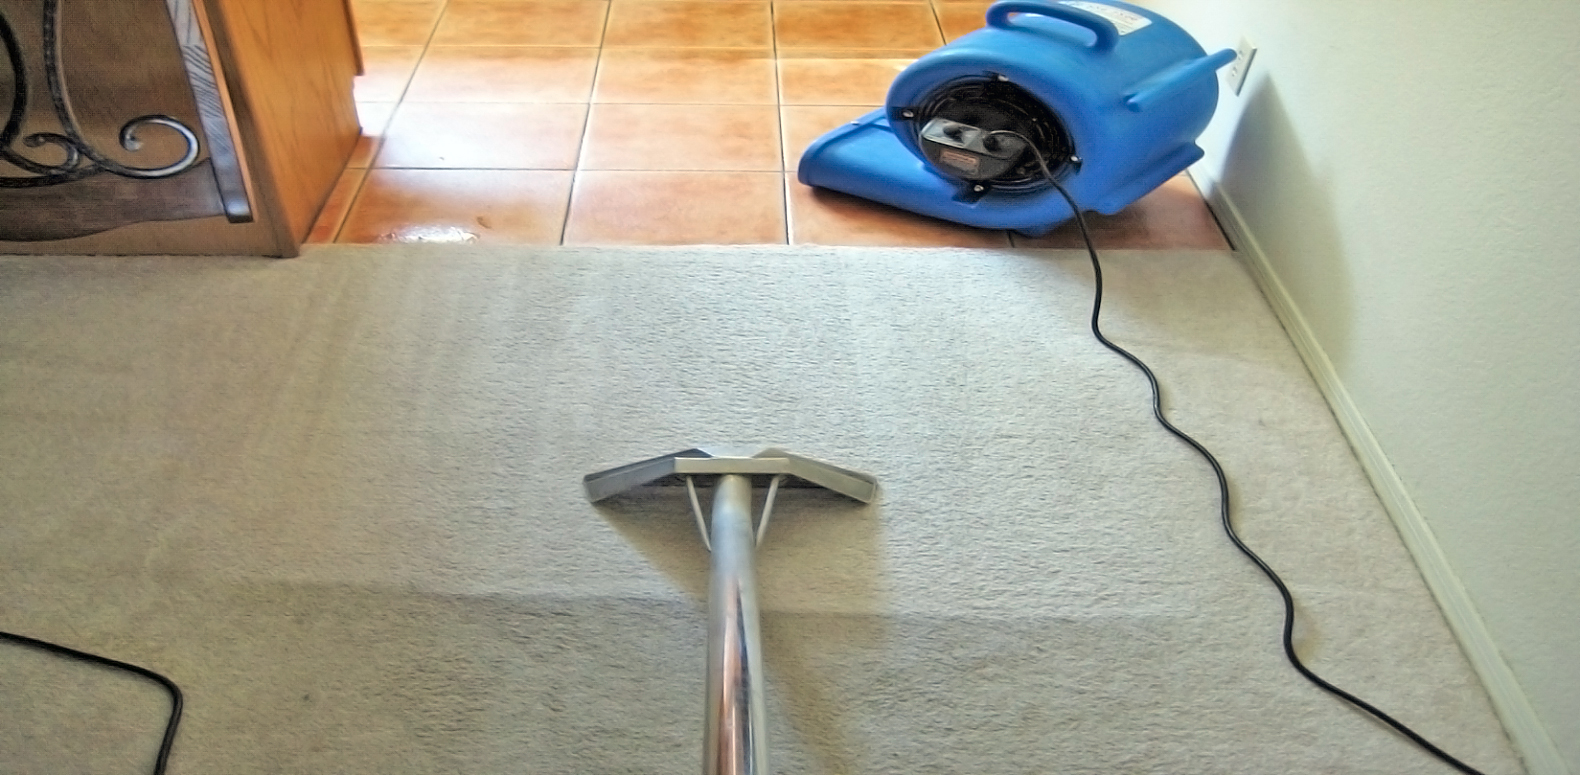 Carpet Cleaning Wilton